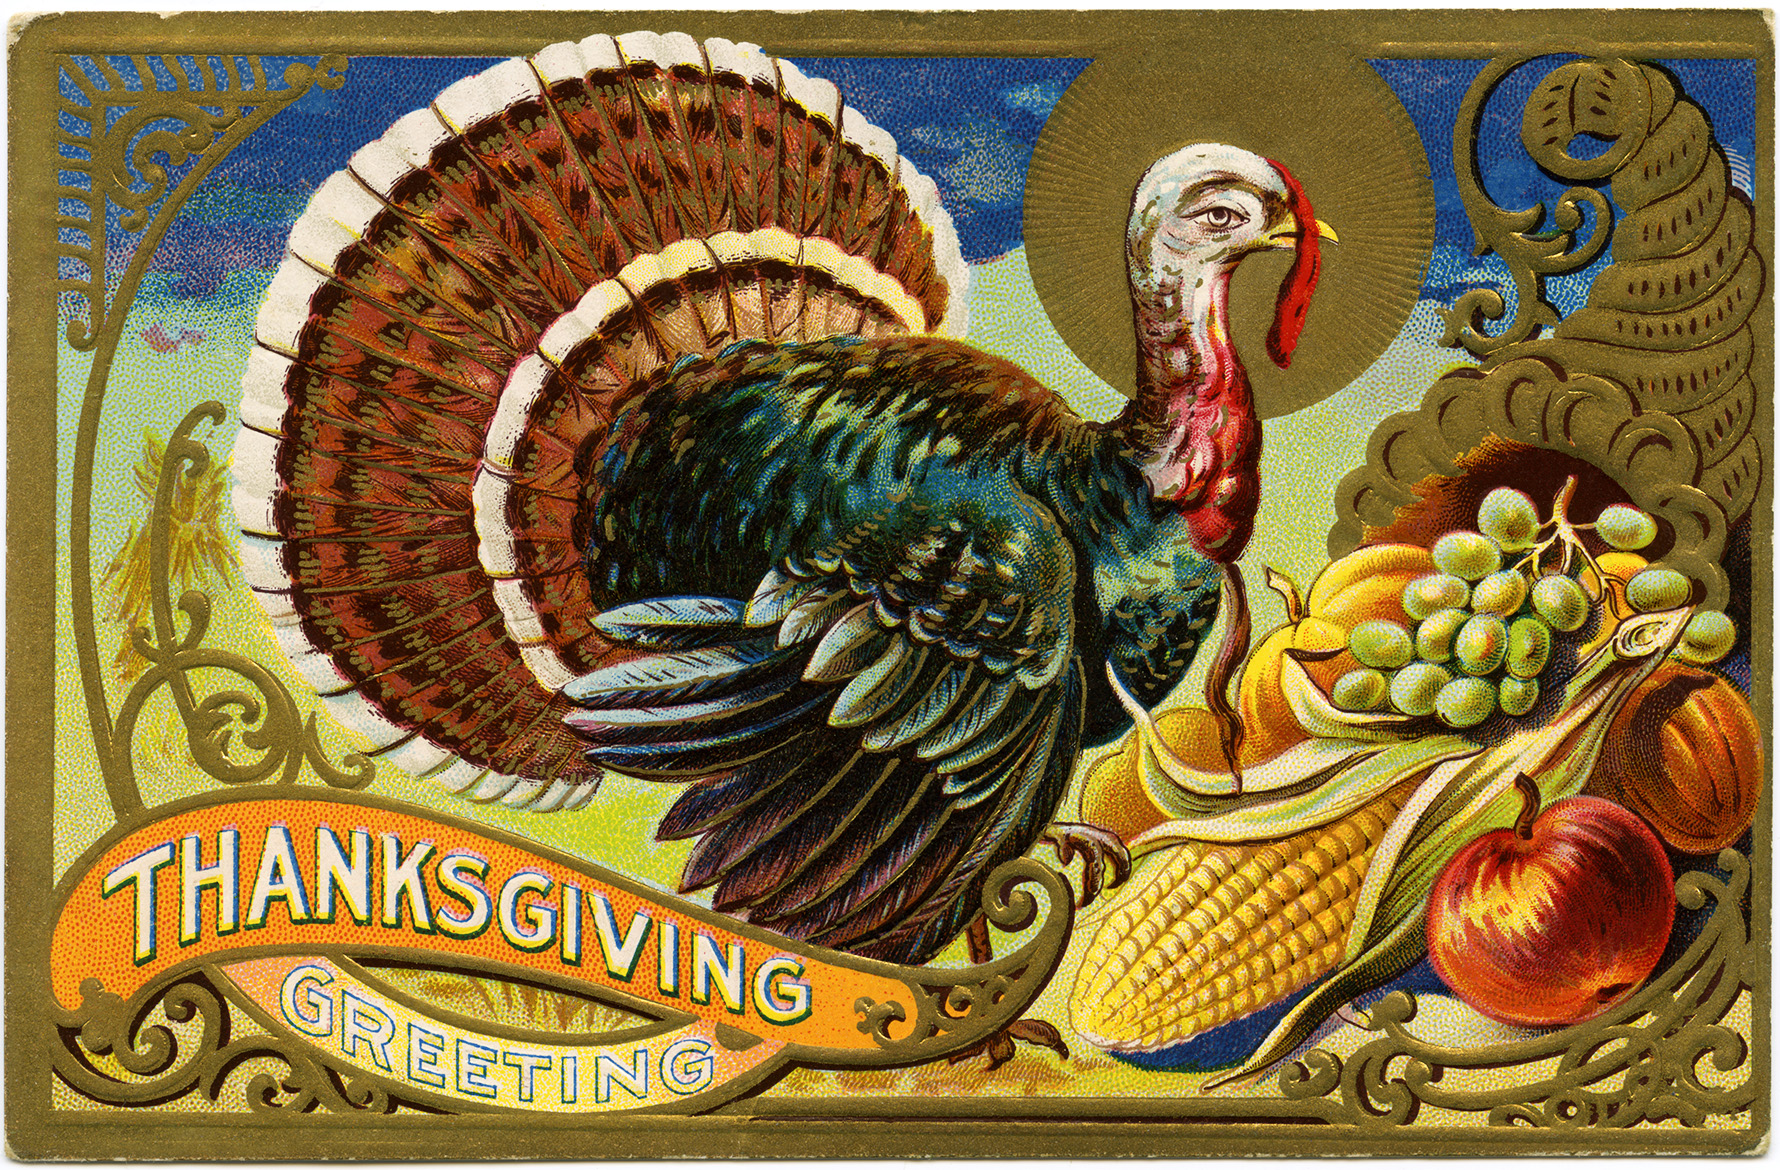 vintage Thanksgiving postcard, turkey clipart, antique holiday card, digital Thanksgiving graphics, old fashioned turkey cornucopia image